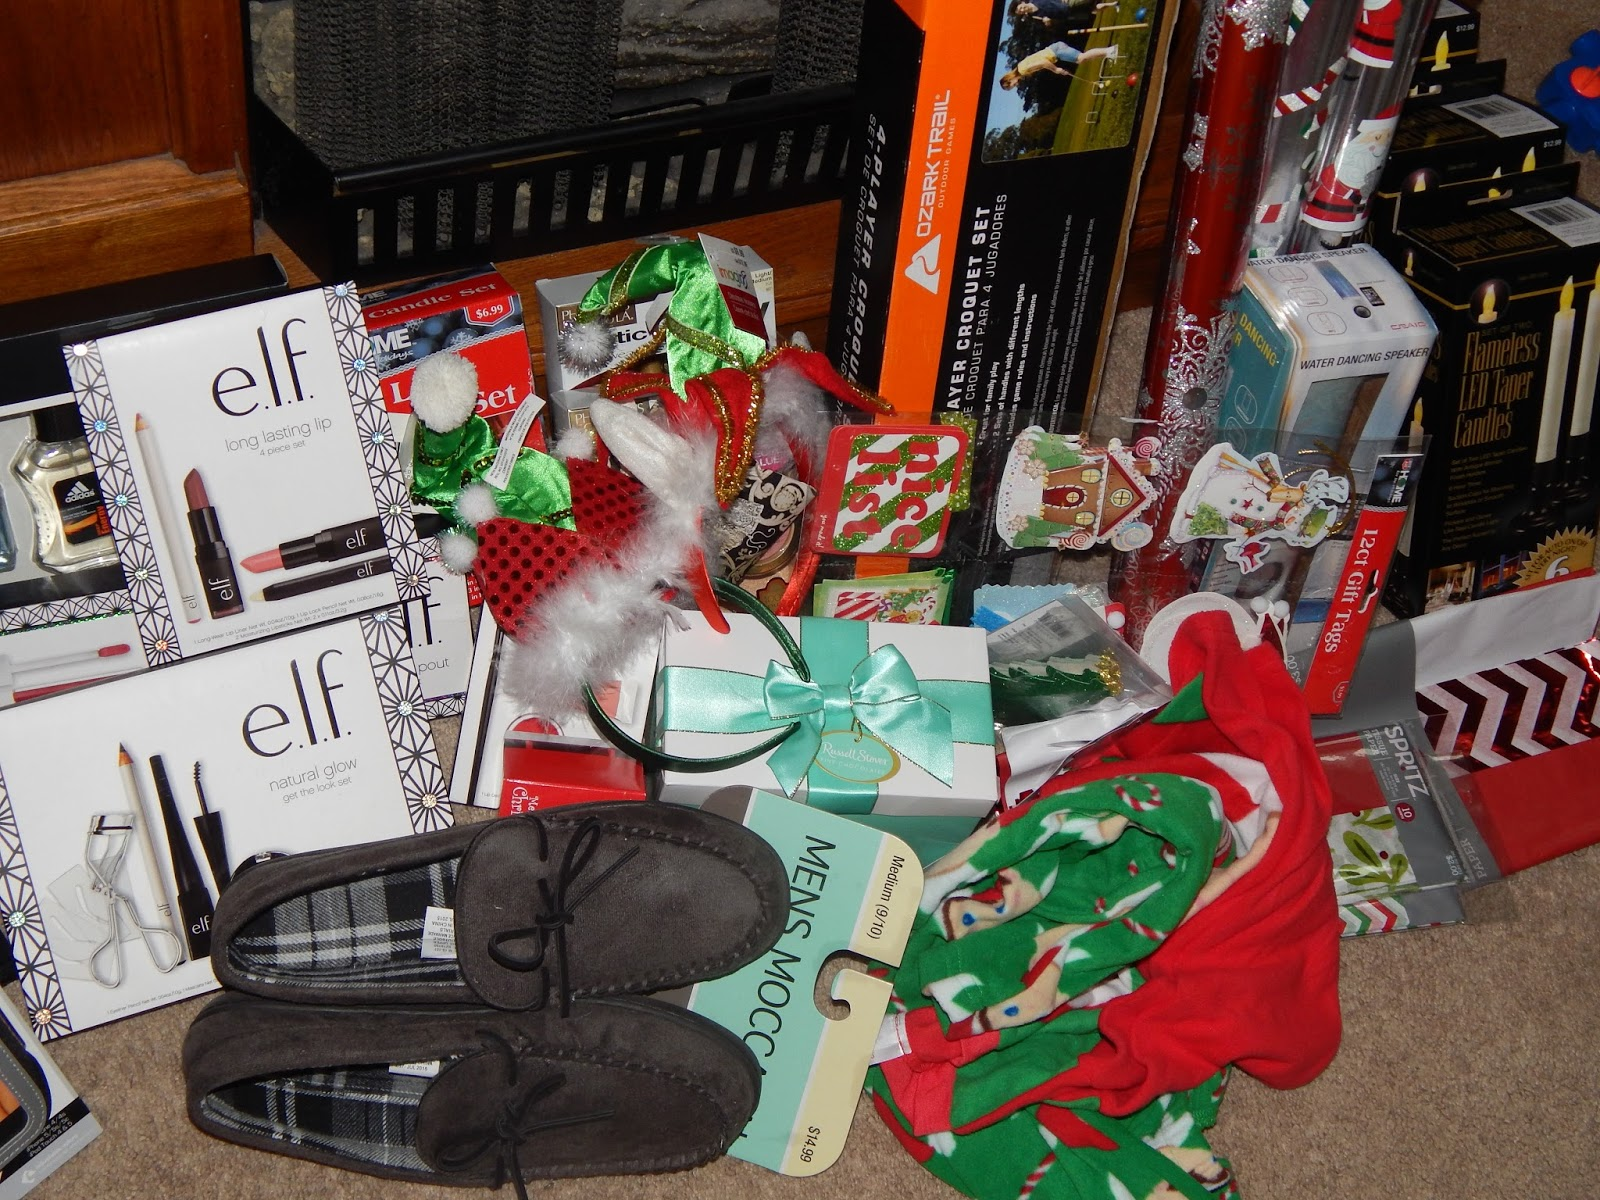 target 50 70 off holiday lots of food items left and misc decorations rite aid 75 off holiday lots of nice gift sets